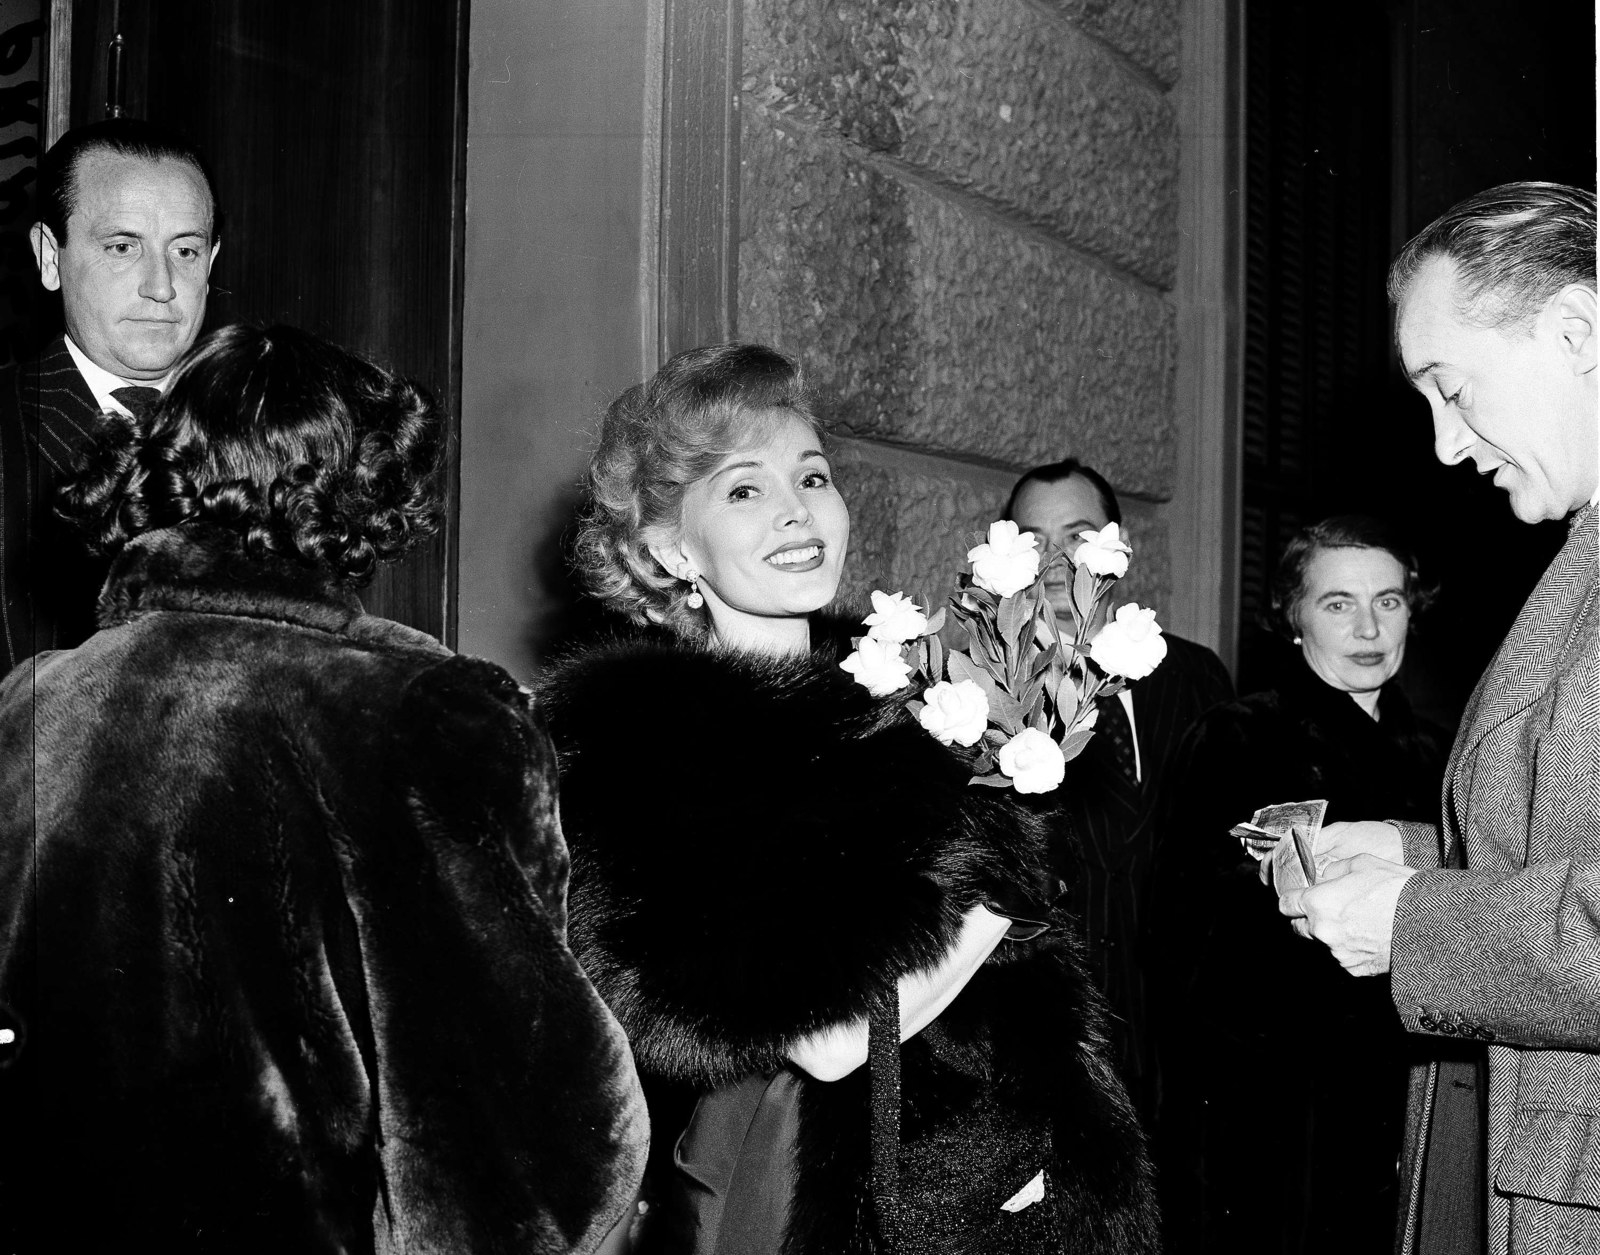 Zsa Zsa Gabor, Often-Married Celebrity 'Dahling,' Dies at 99